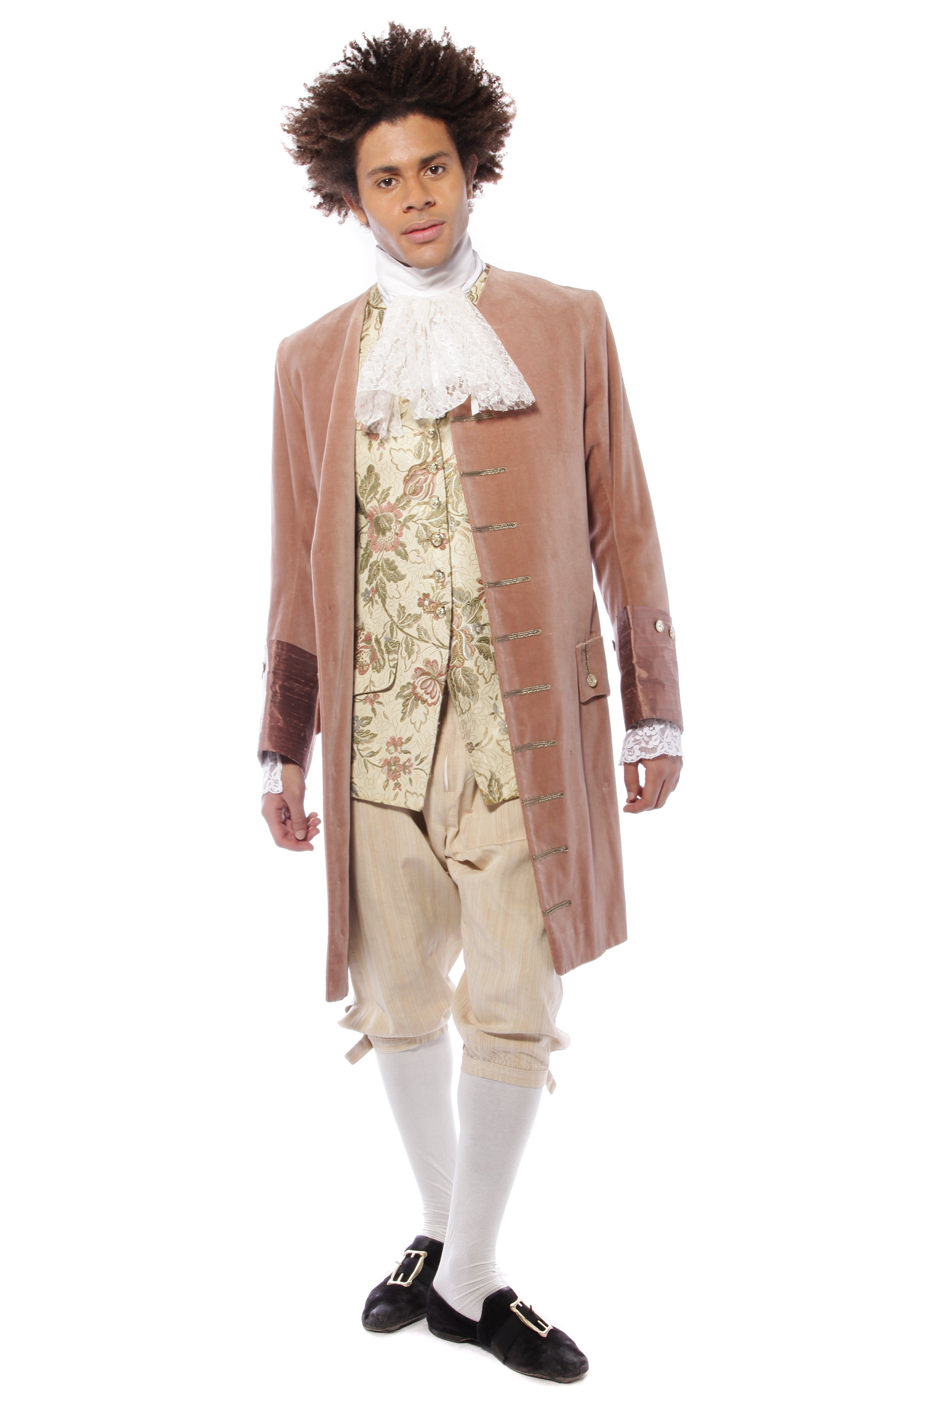 GEORGIAN GENT SALMON PINK AND BROCADE COSTUME